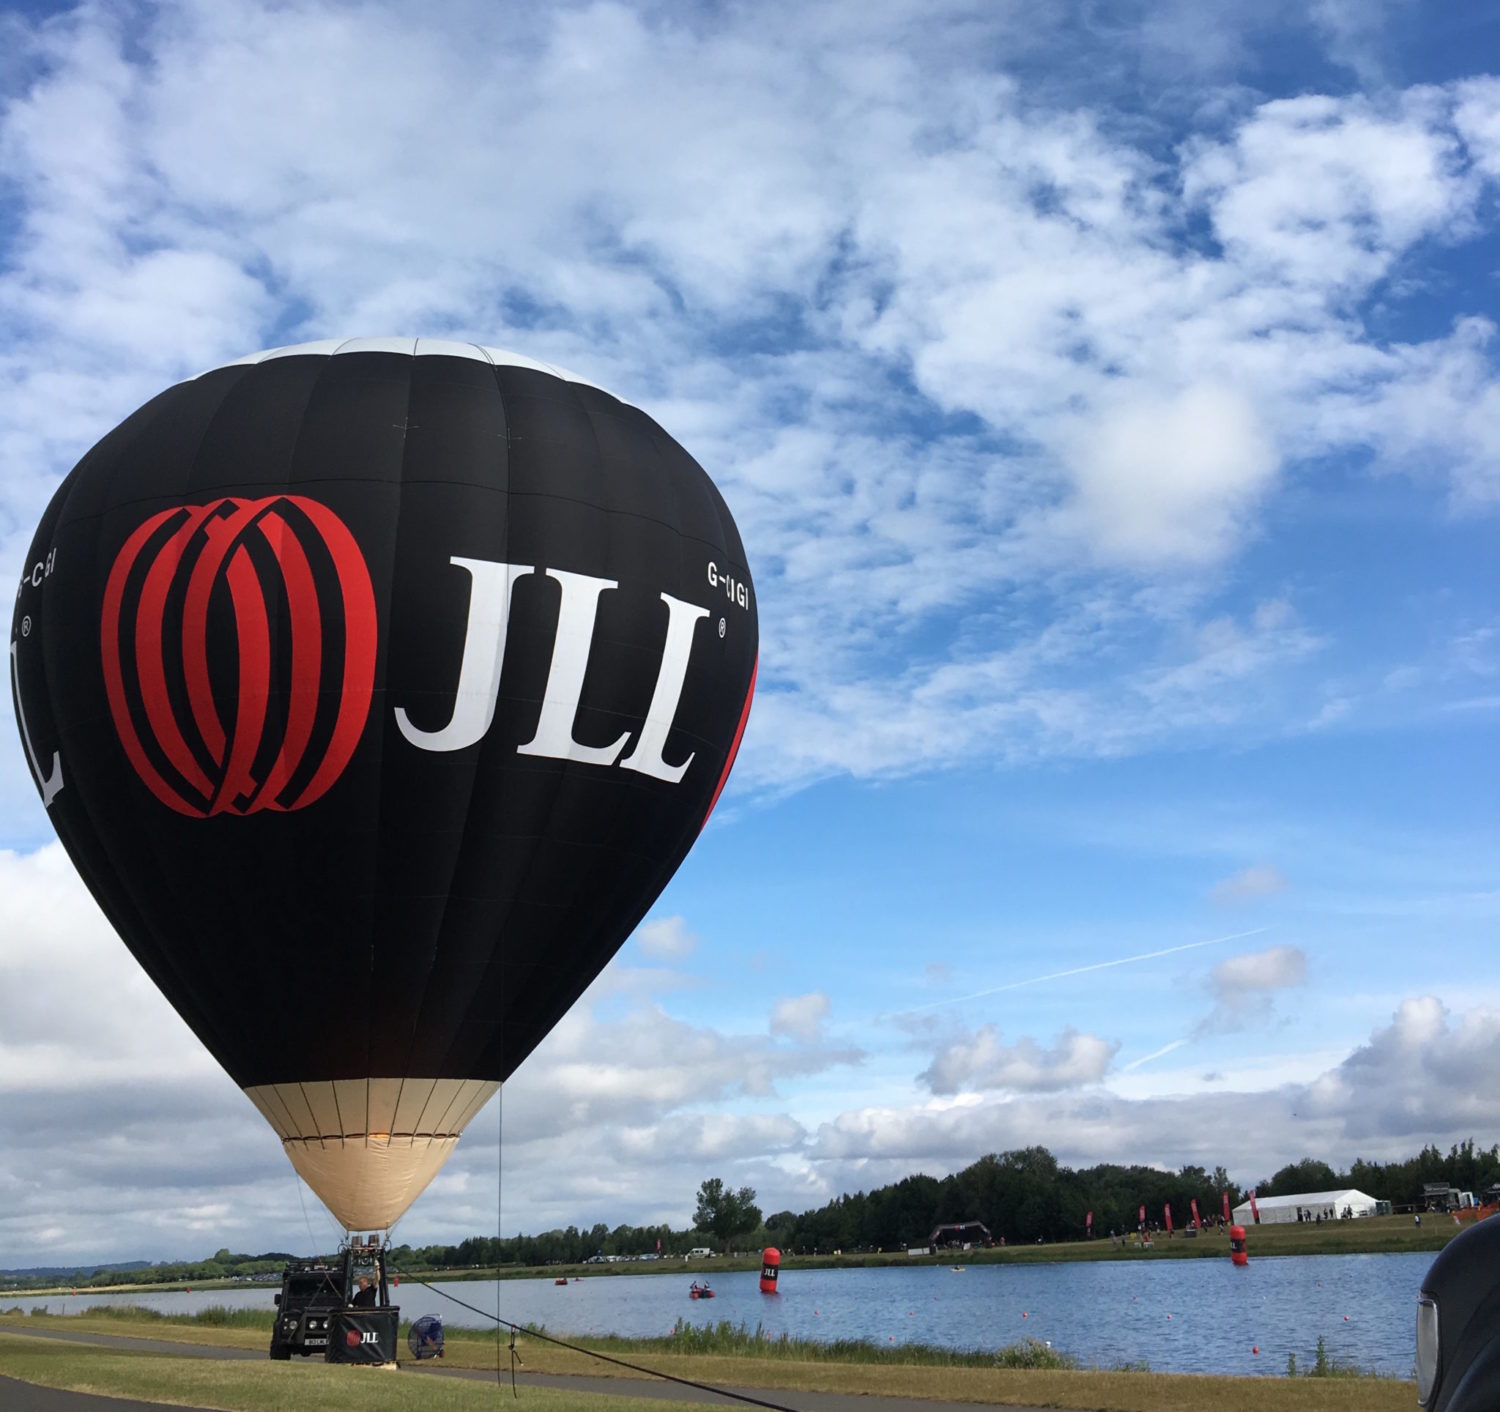 JLL's branded hot air balloon at #PropertyTri